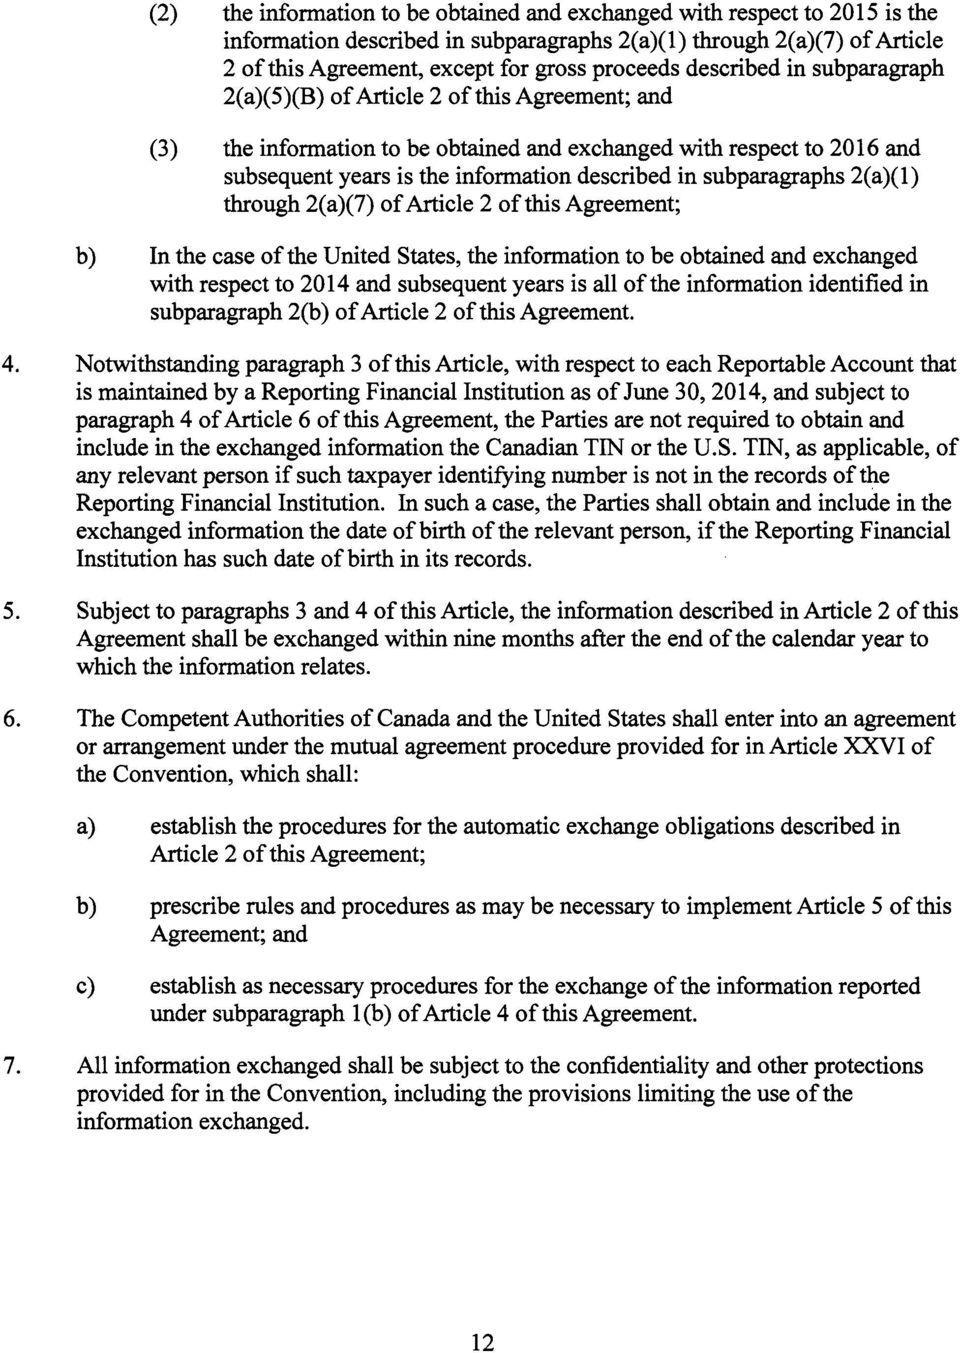 subparagraphs 2(a)(1) through 2(a)(7) of Article 2 of this Agreement; b) In the case of the United States, the information to be obtained and exchanged with respect to 2014 and subsequent years is